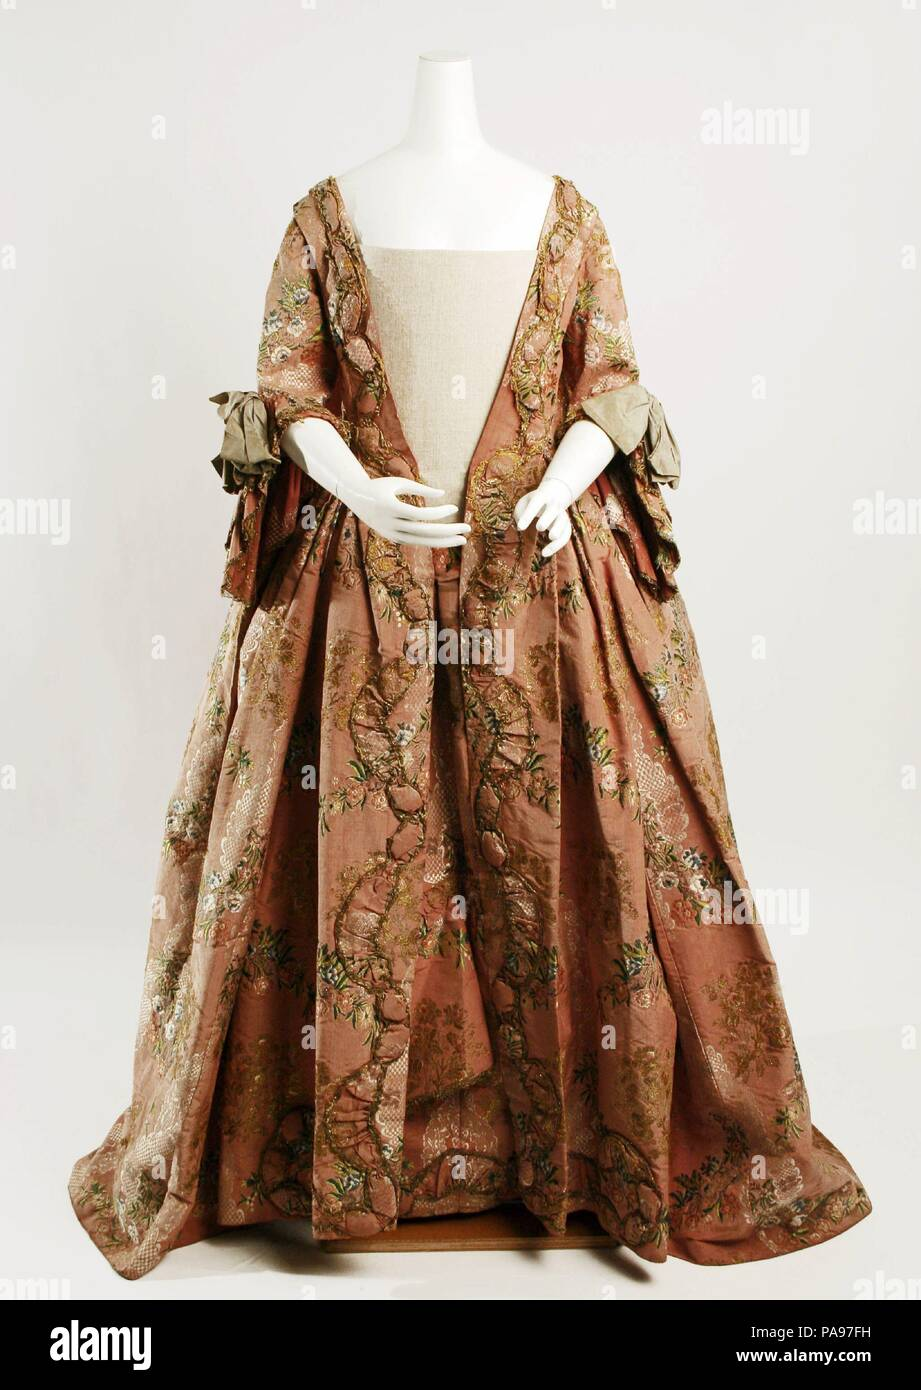 d22bd9aa726 Robe A La Francaise Stock Photos   Robe A La Francaise Stock Images ...